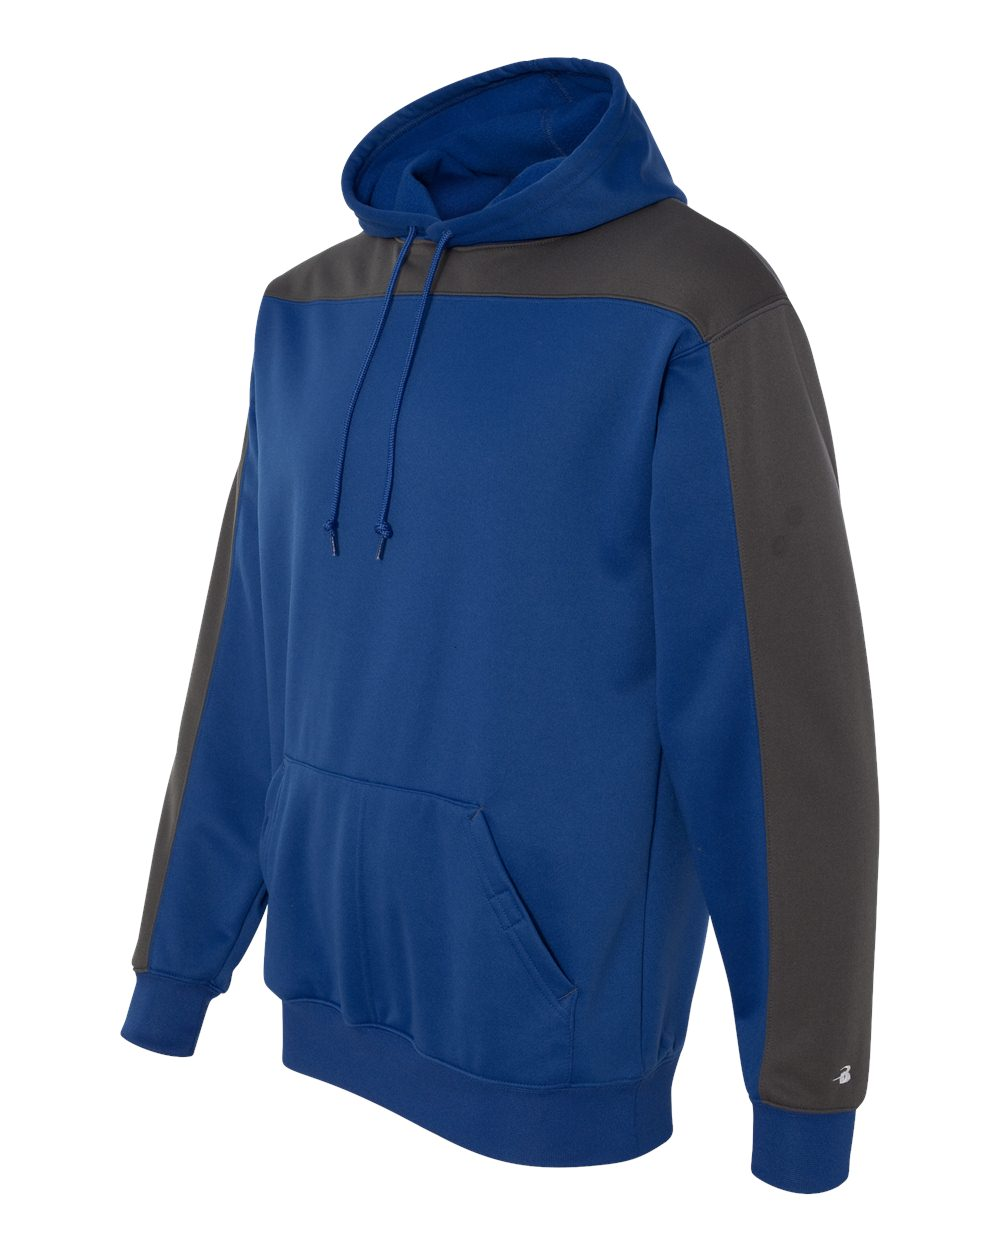 Badger 1466 - Defender Polyester Fleece Hooded Pullover